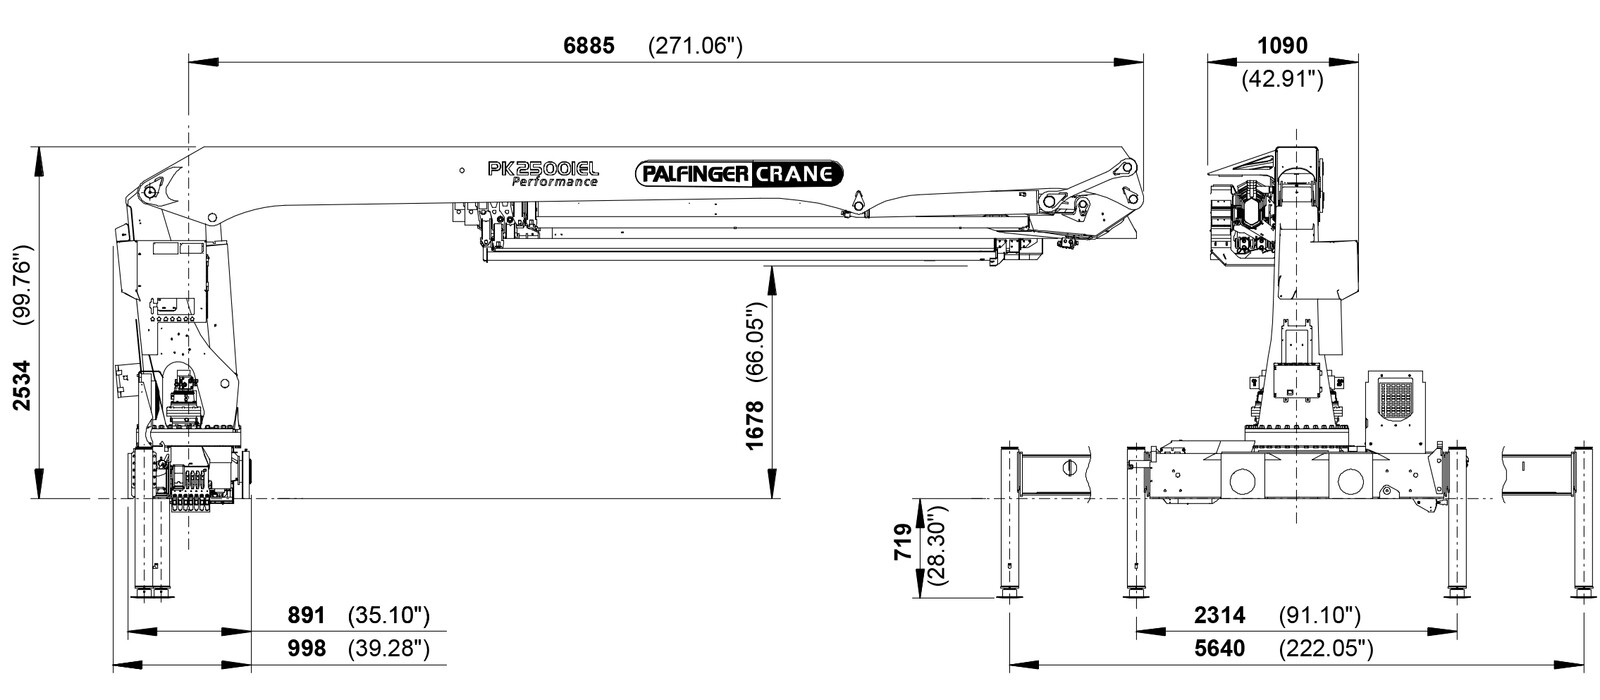 pk25001el_drawing pk 25001 el performance palfinger palfinger wiring diagram at cos-gaming.co